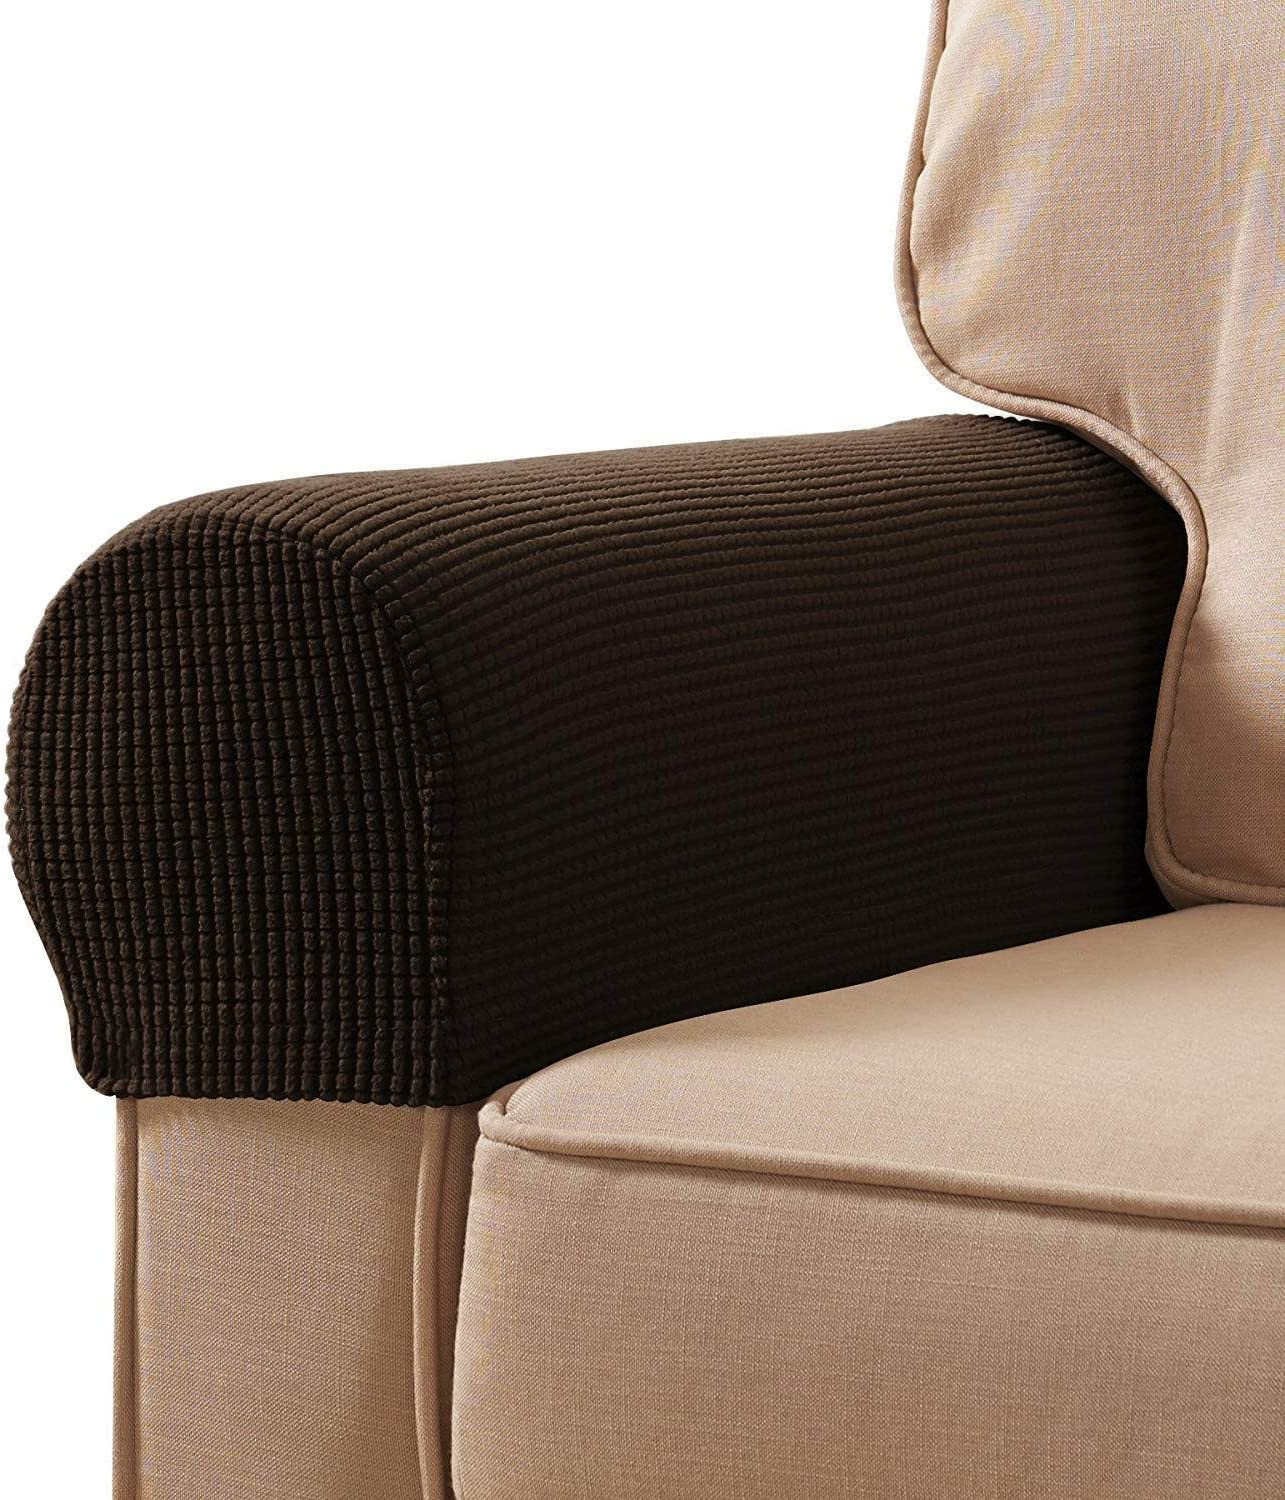 Veronica Spandex Stretch Fabric Armrest Covers Furniture Protector Polyester Anti-Stain Washable Sofa Armchair Slipcovers Set of 2 (Chocolate)